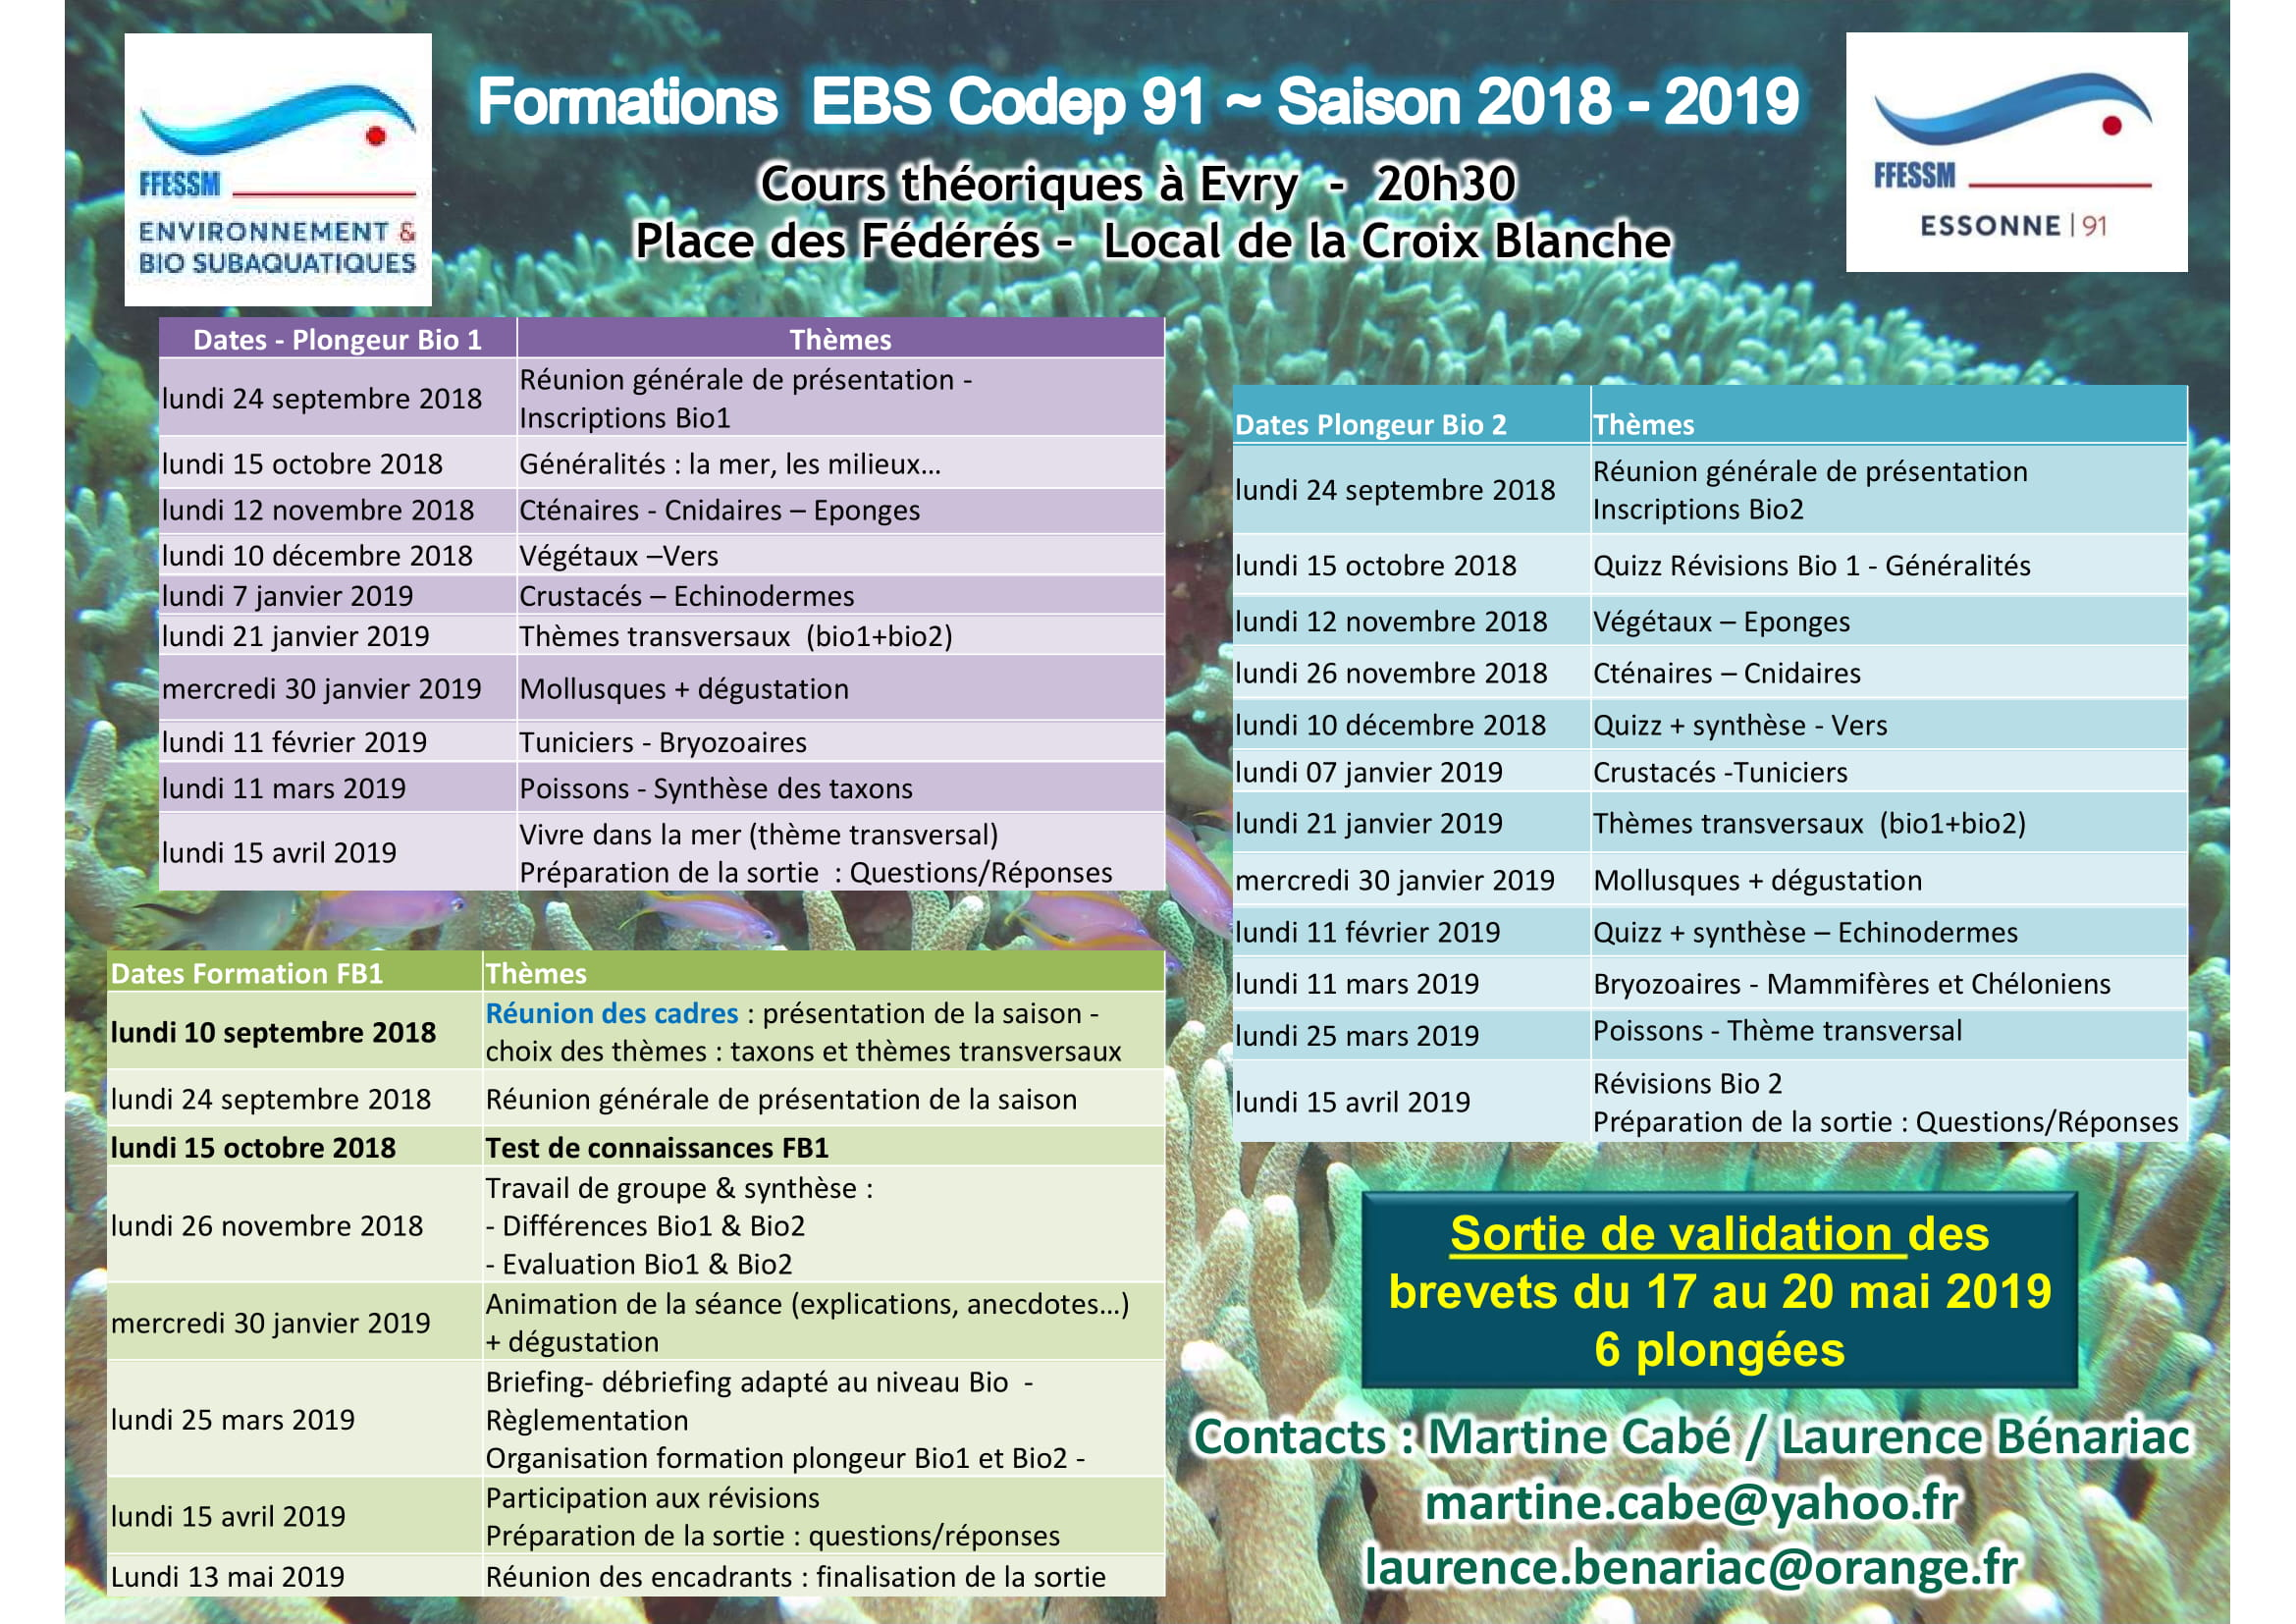 calendrier ebs 2018 2019 1